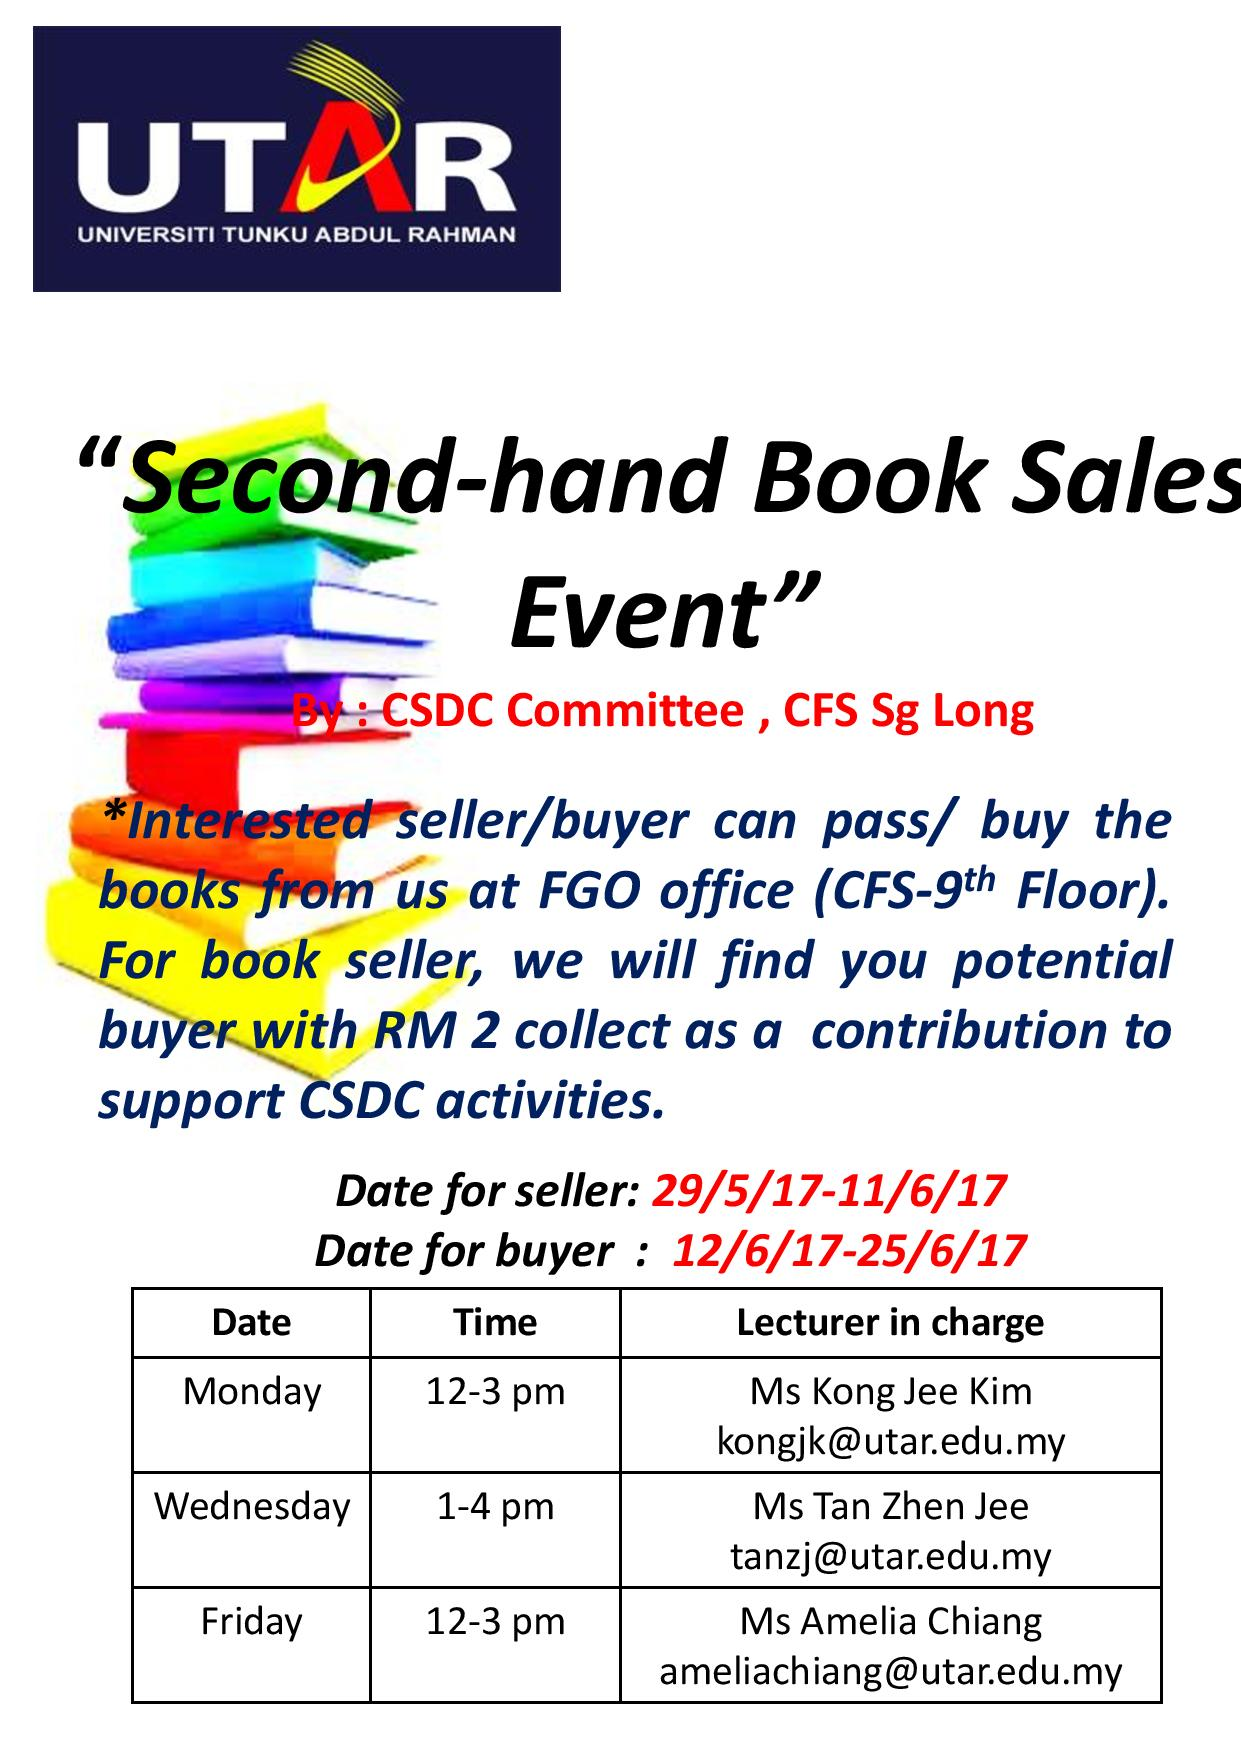 2nd hand book sales